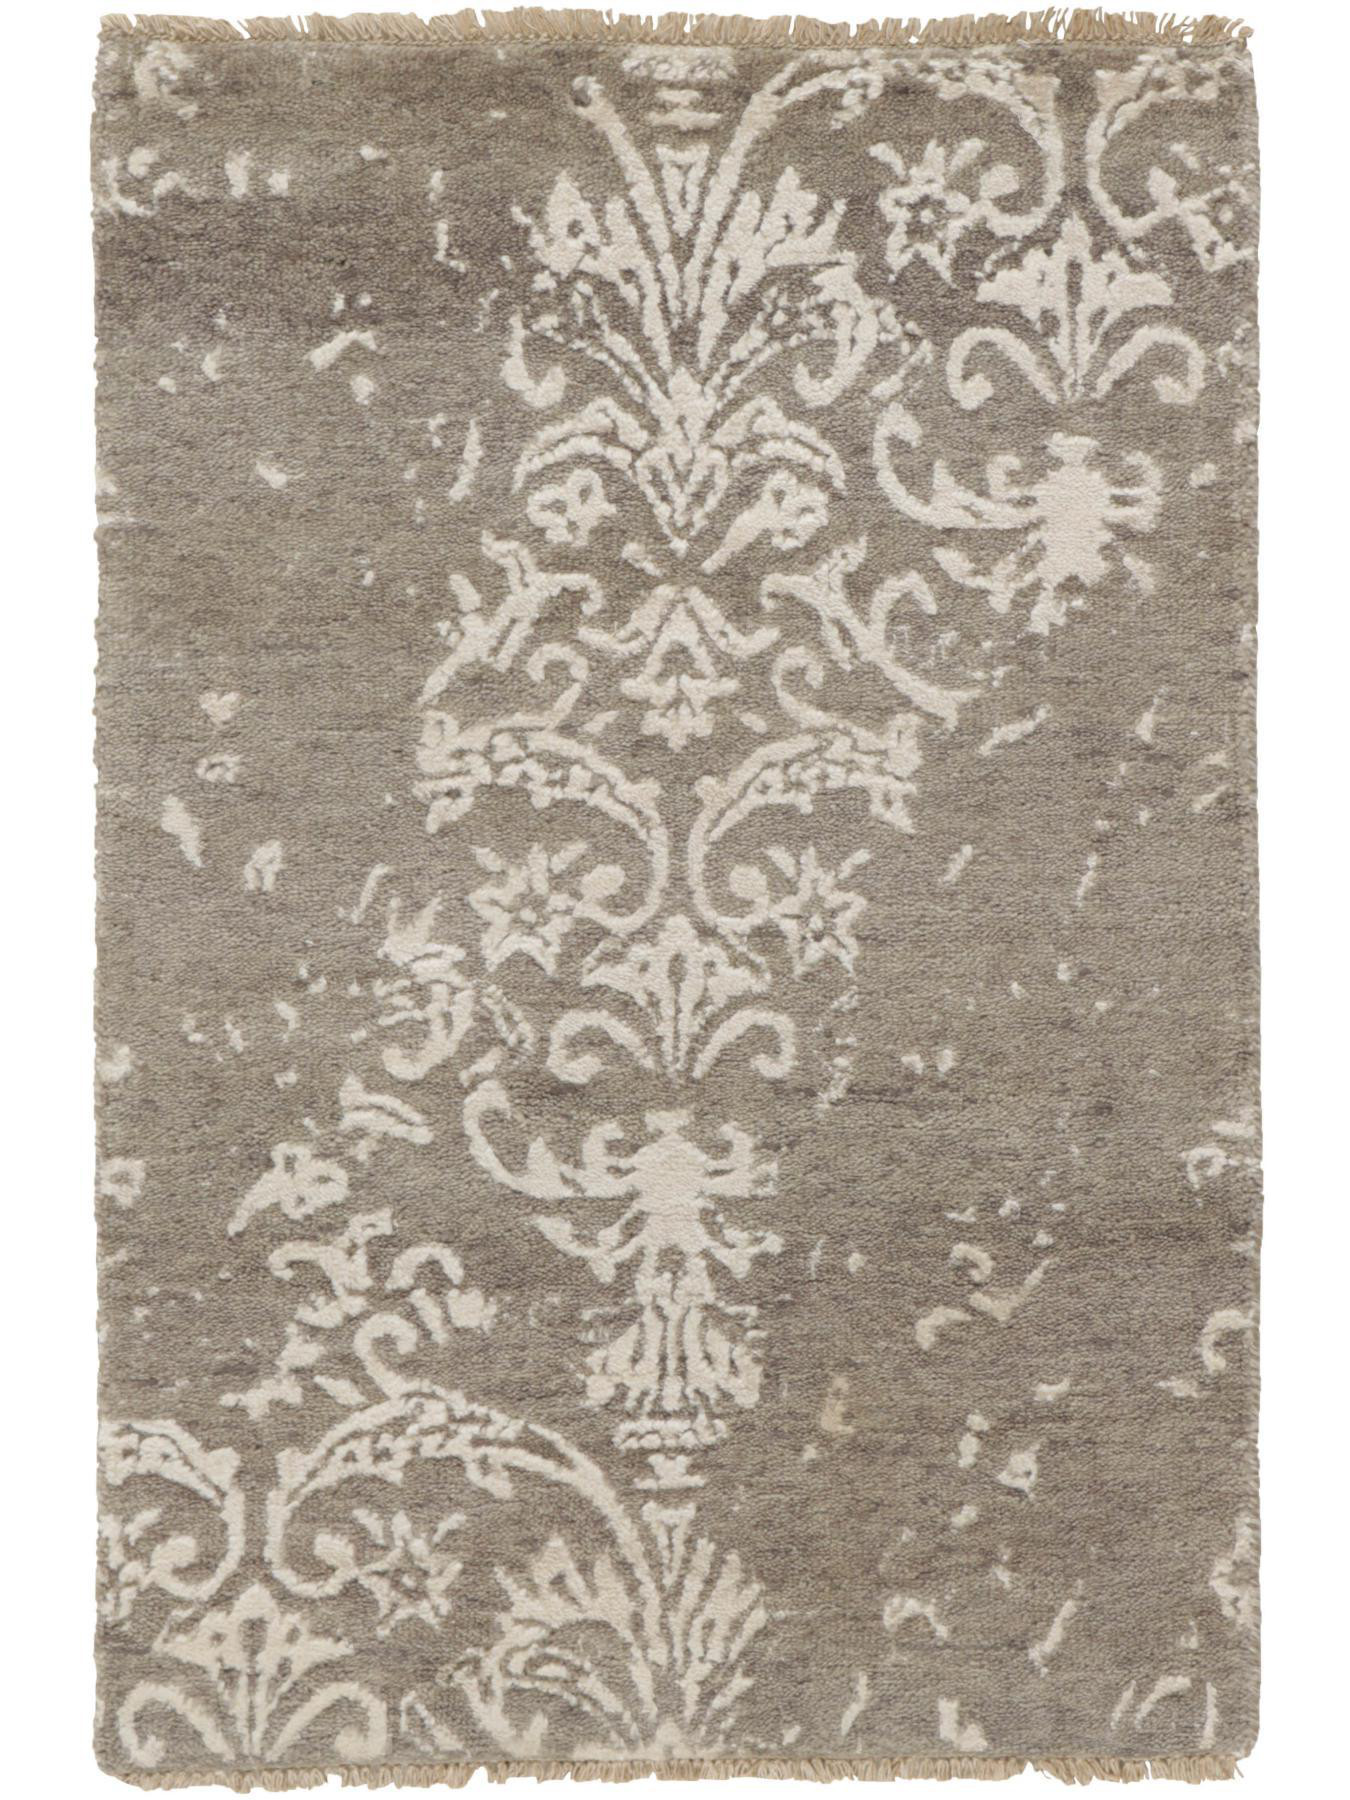 Luxury carpets - Damask-AL-2E F-34/B-34